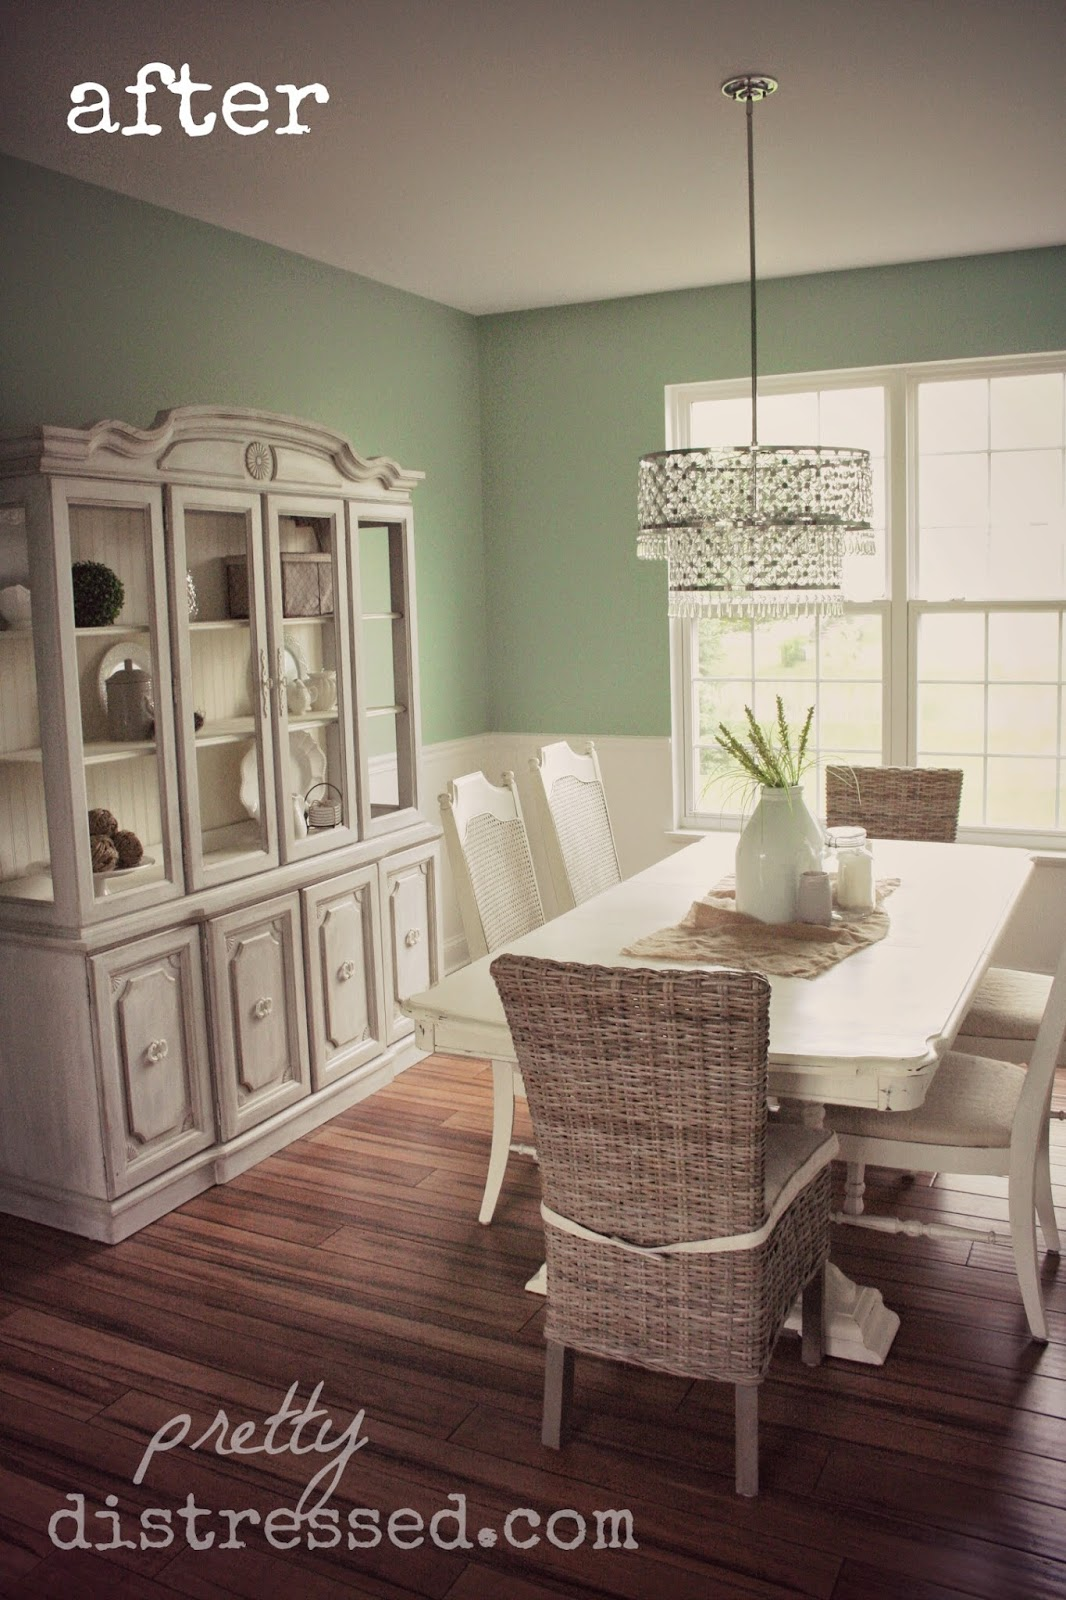 Pretty Distressed: Dining Room - Before & After